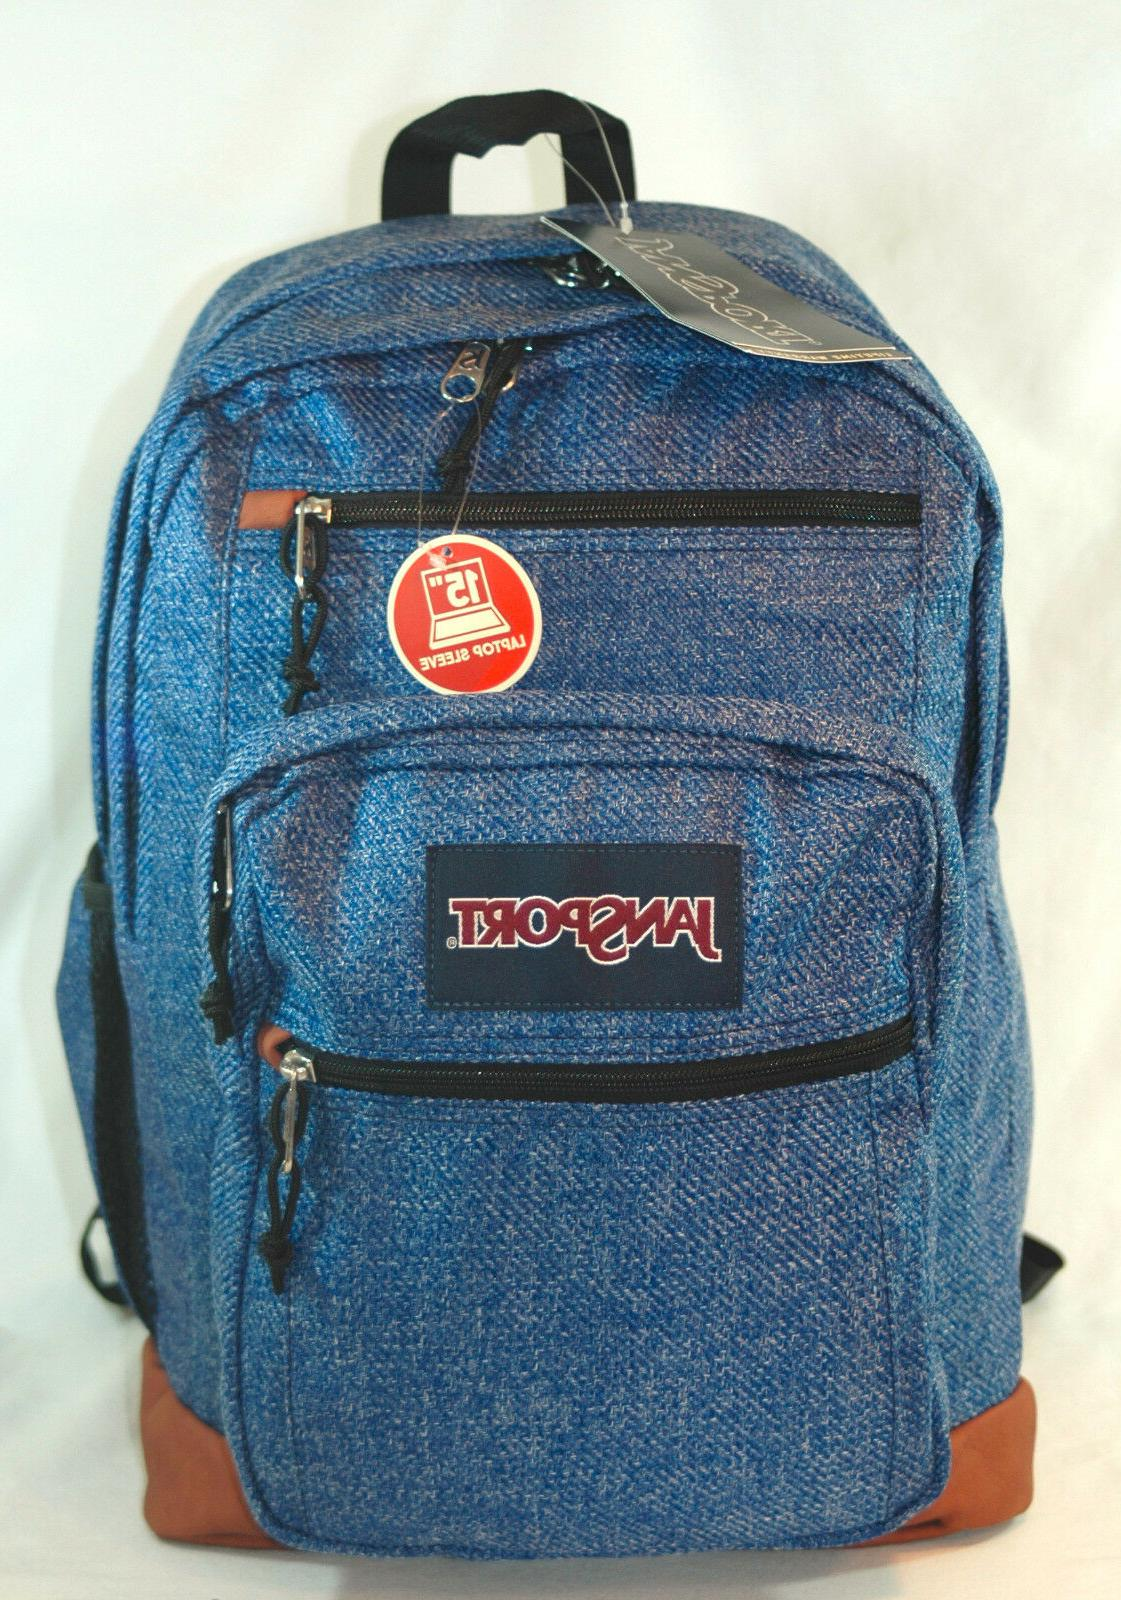 New JanSport Big Cool Student Laptop Backpack -- Blue Twill